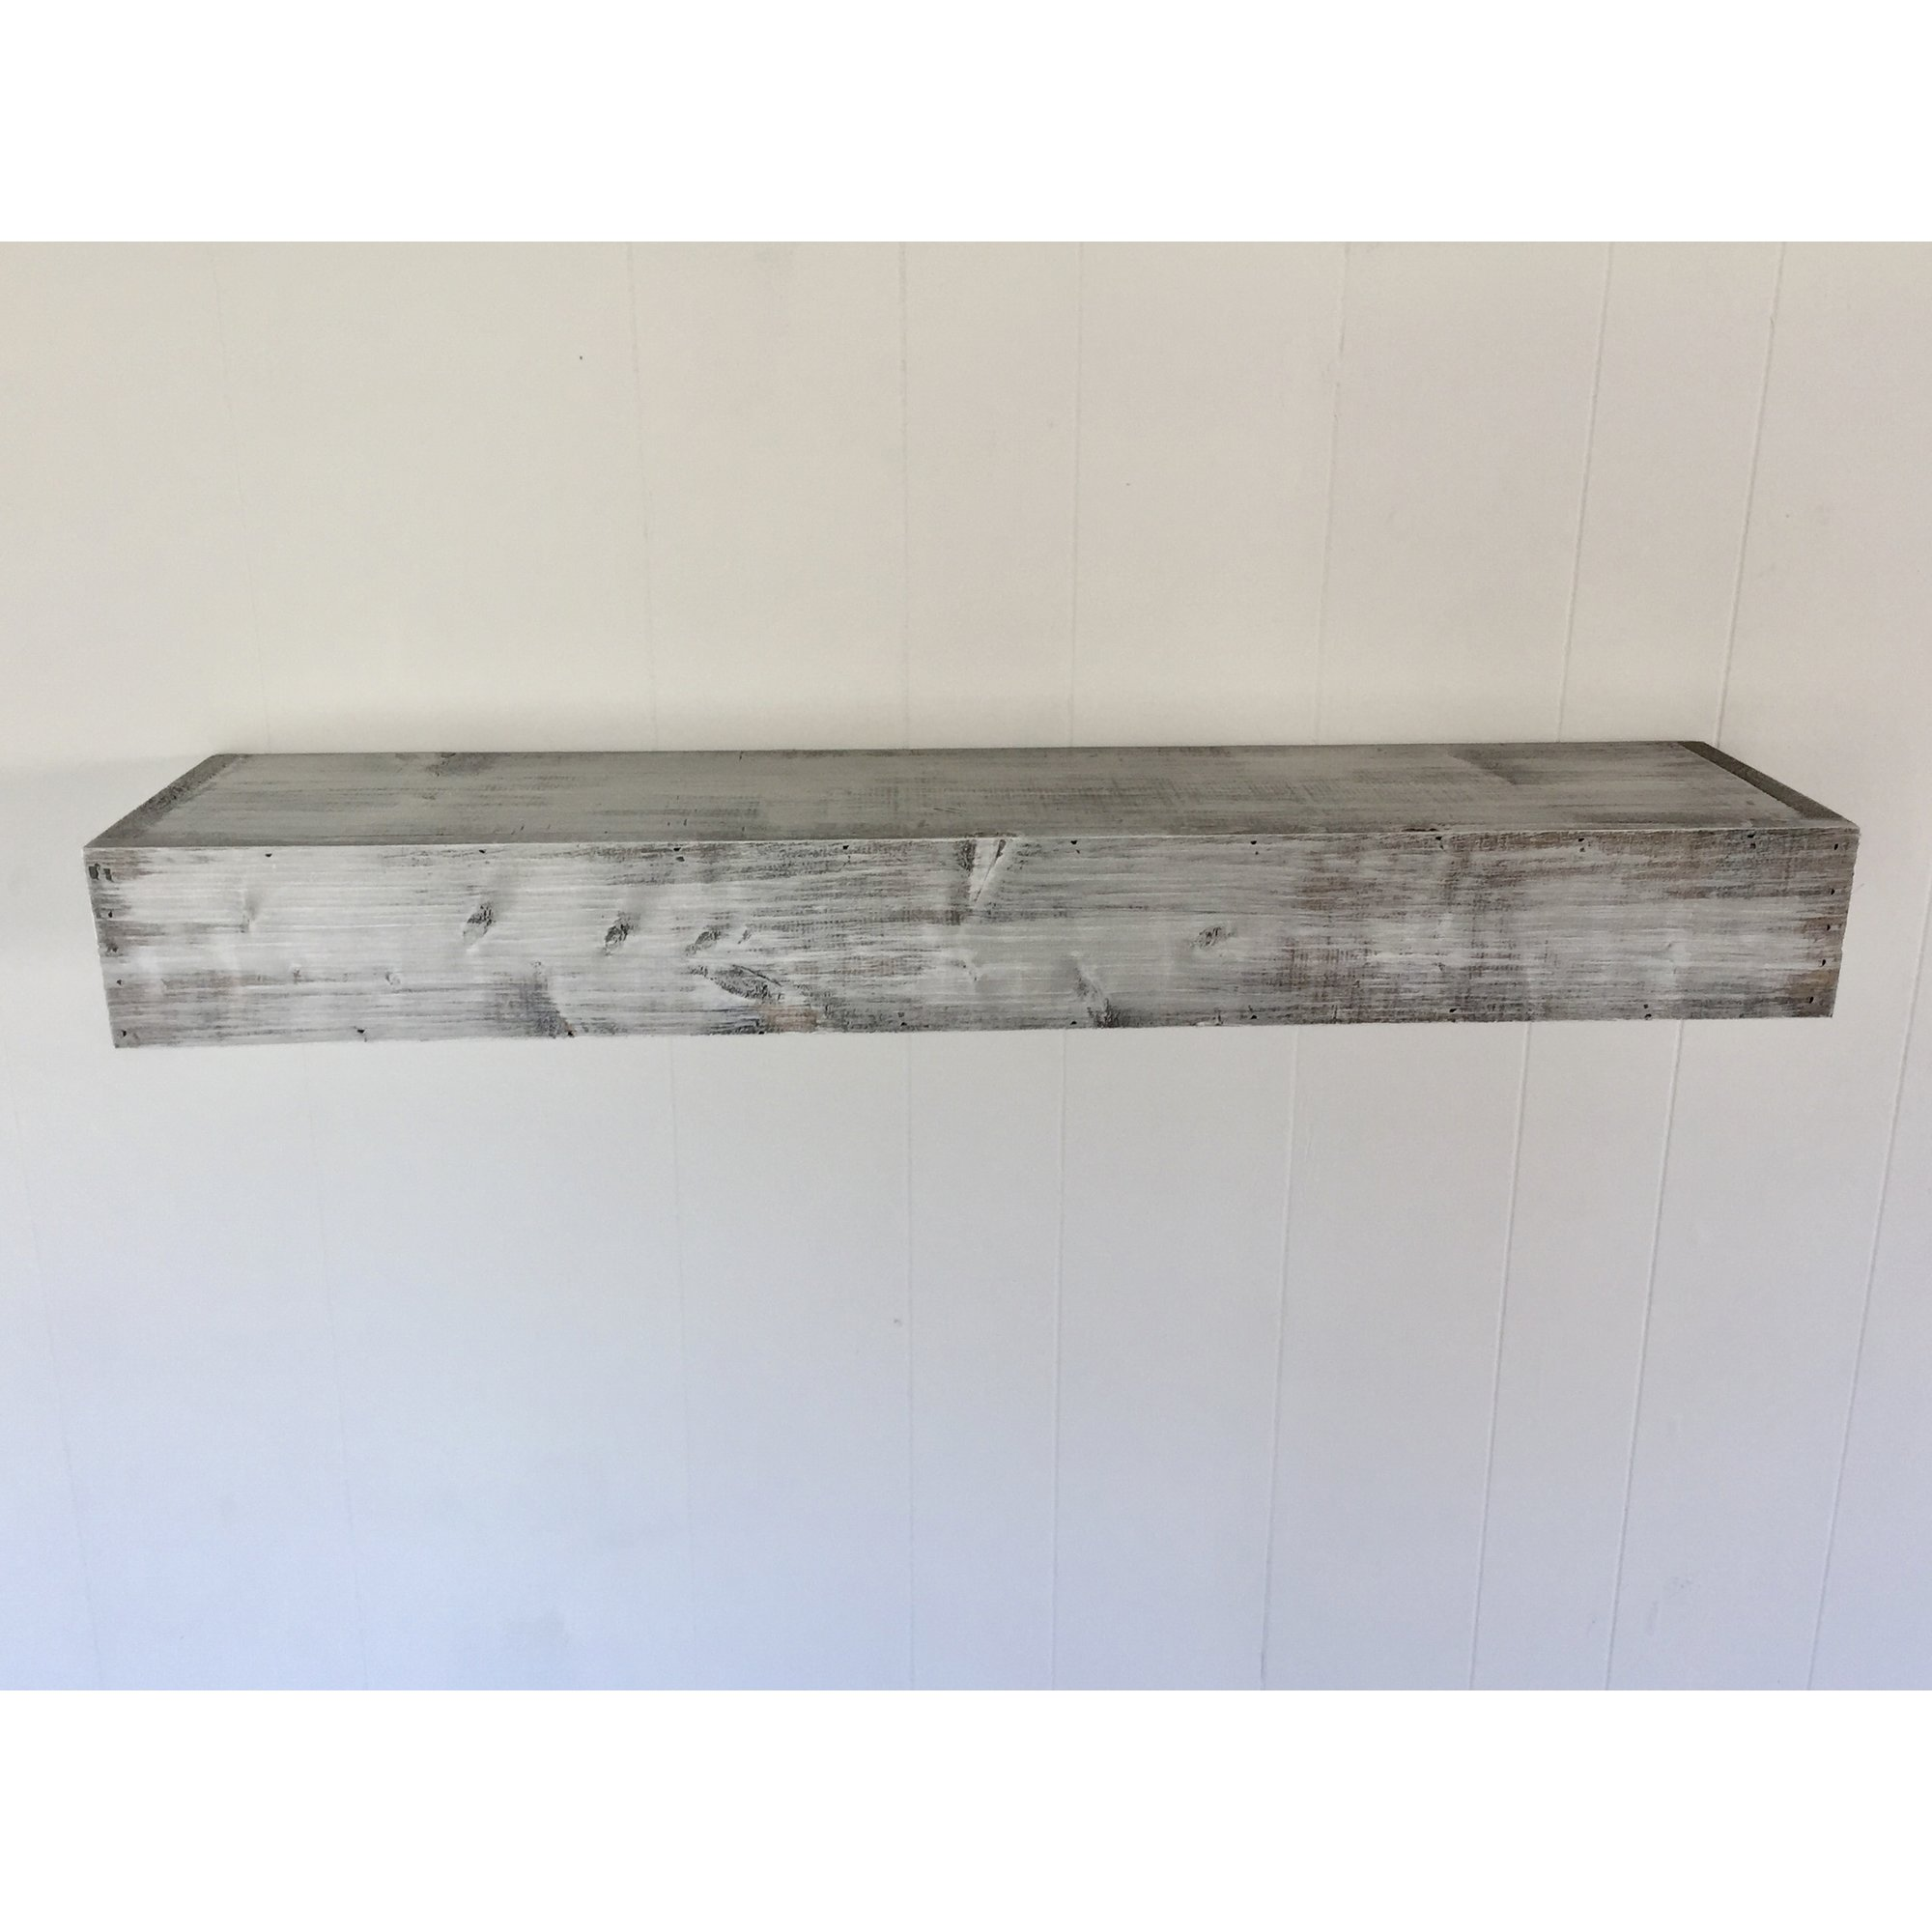 wall shelves with hooks you love floating shelf shabby white solid wood handmade rustic style quick view reclaimed barn table lack side hack triangle brackets hanging installing